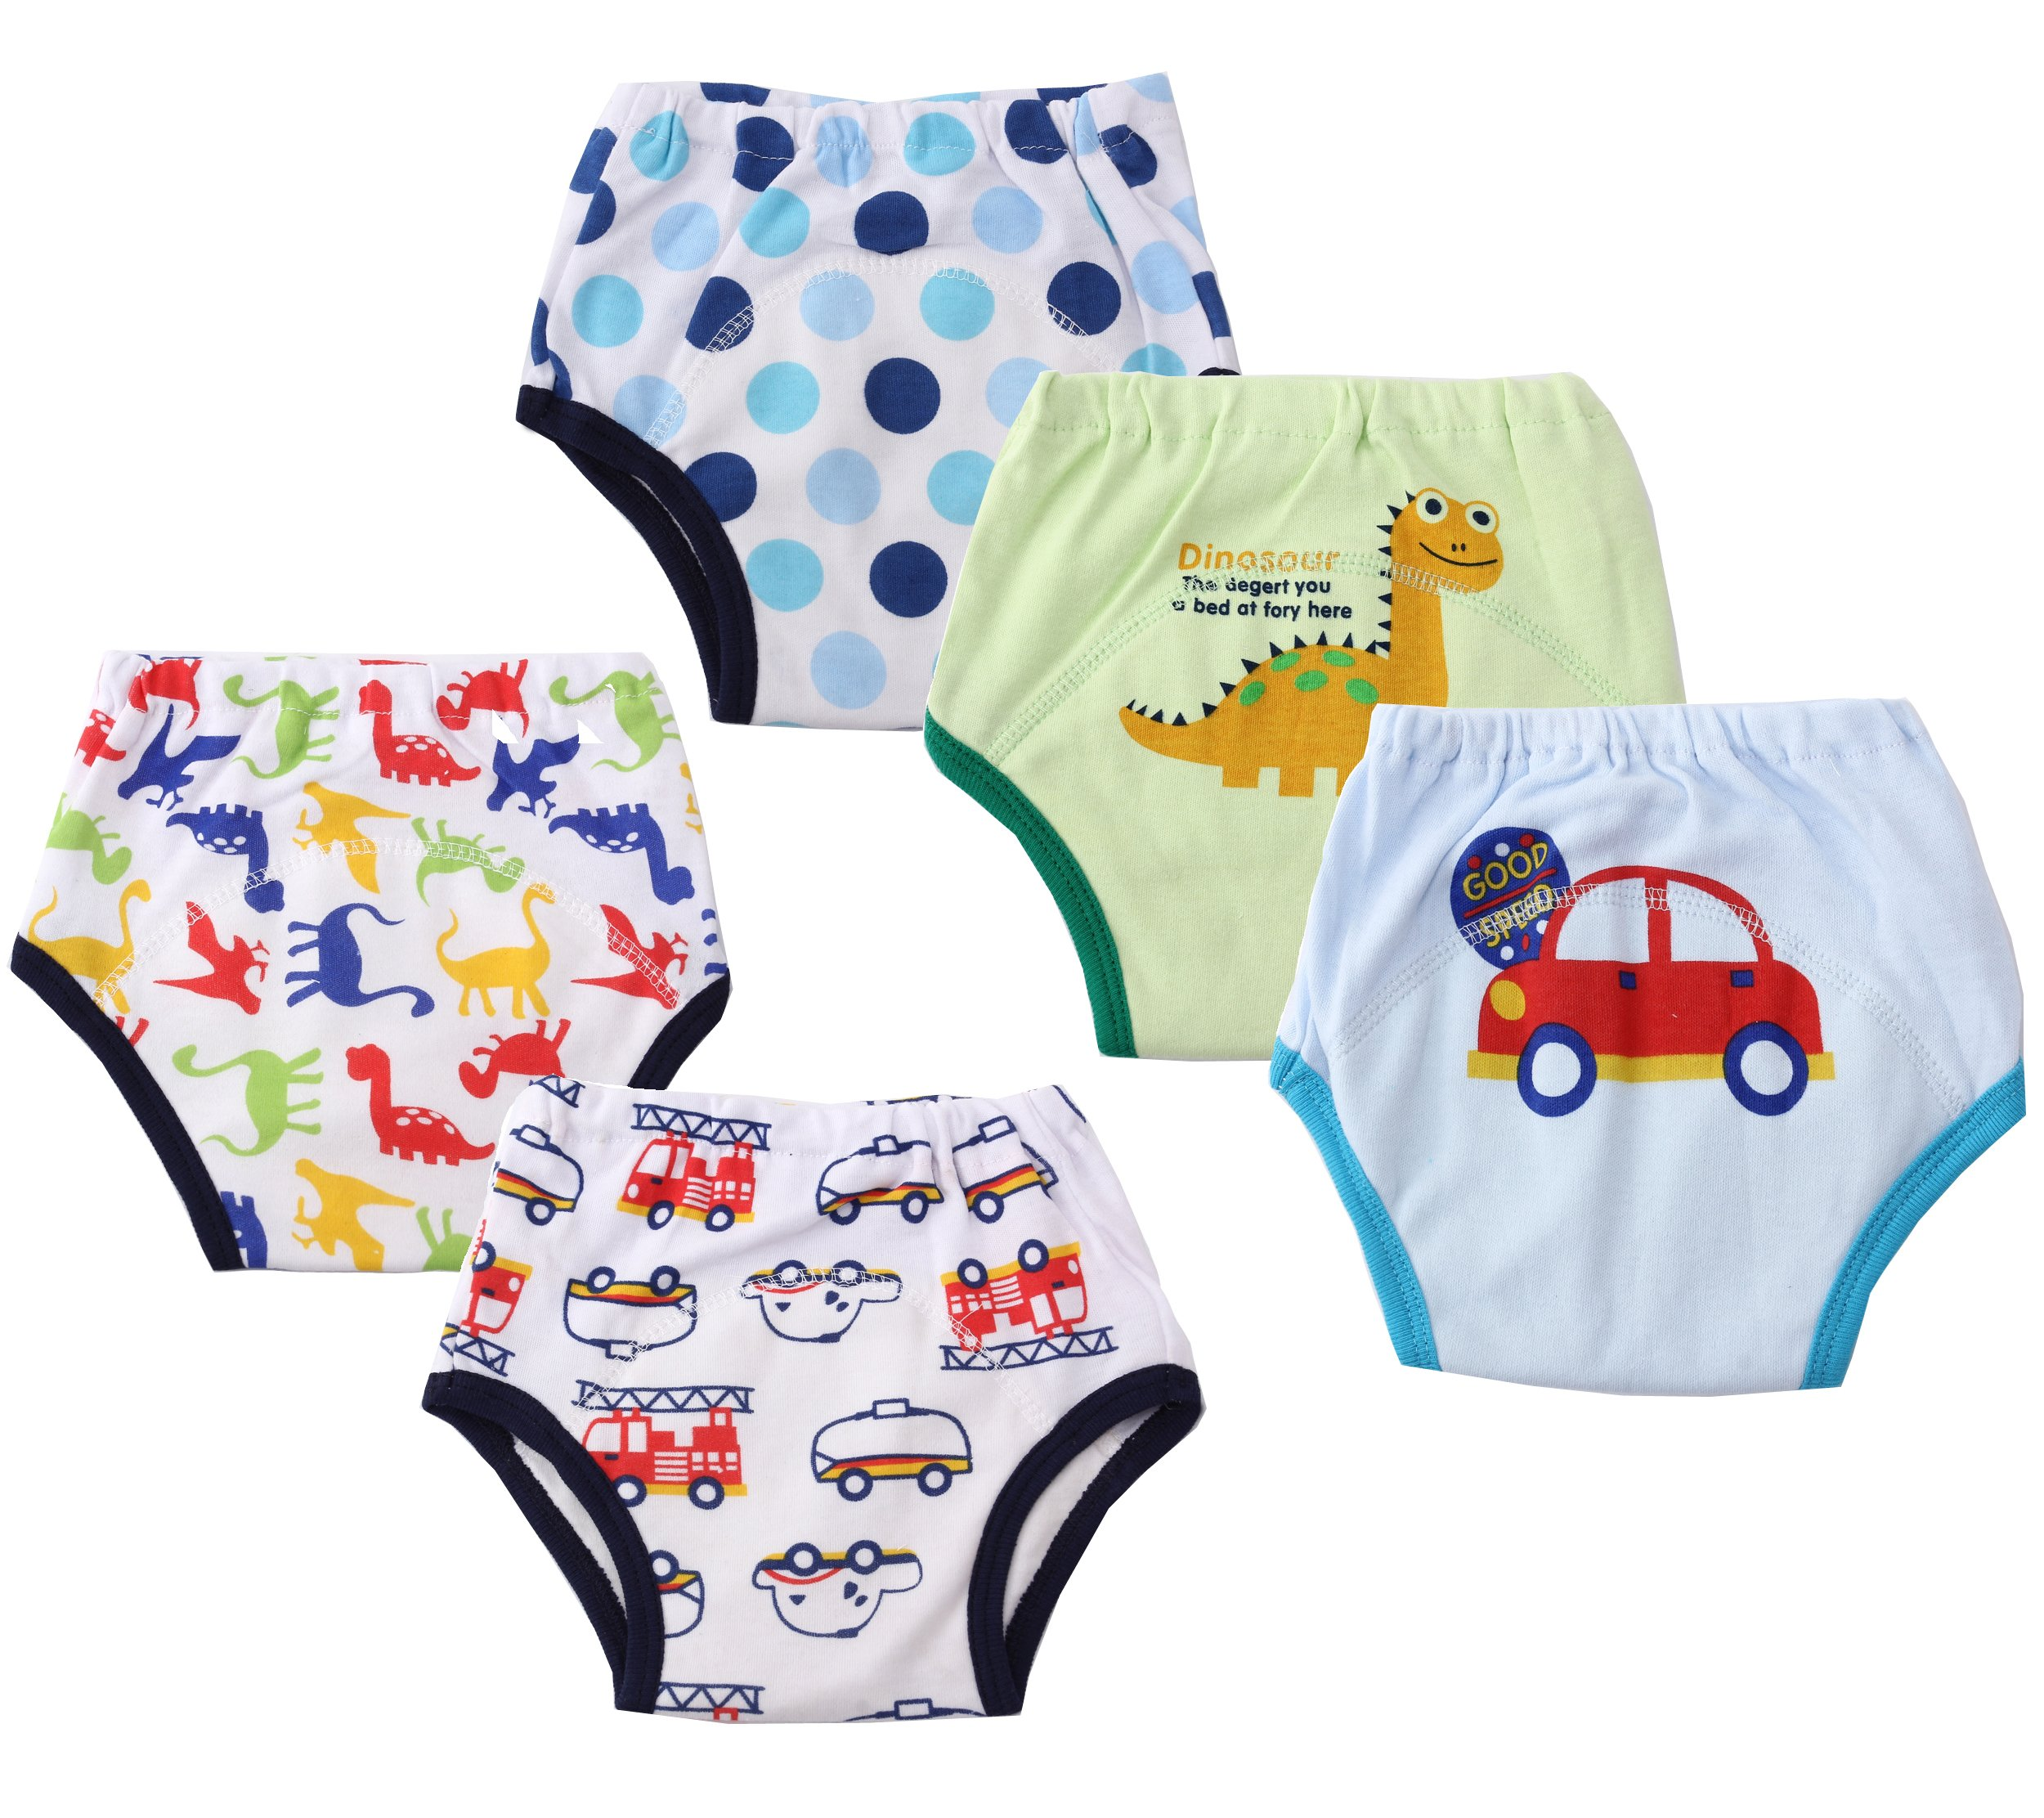 Dimore Baby Toddler 5 Pack Cotton Waterproof Training Pants (L, Boy)